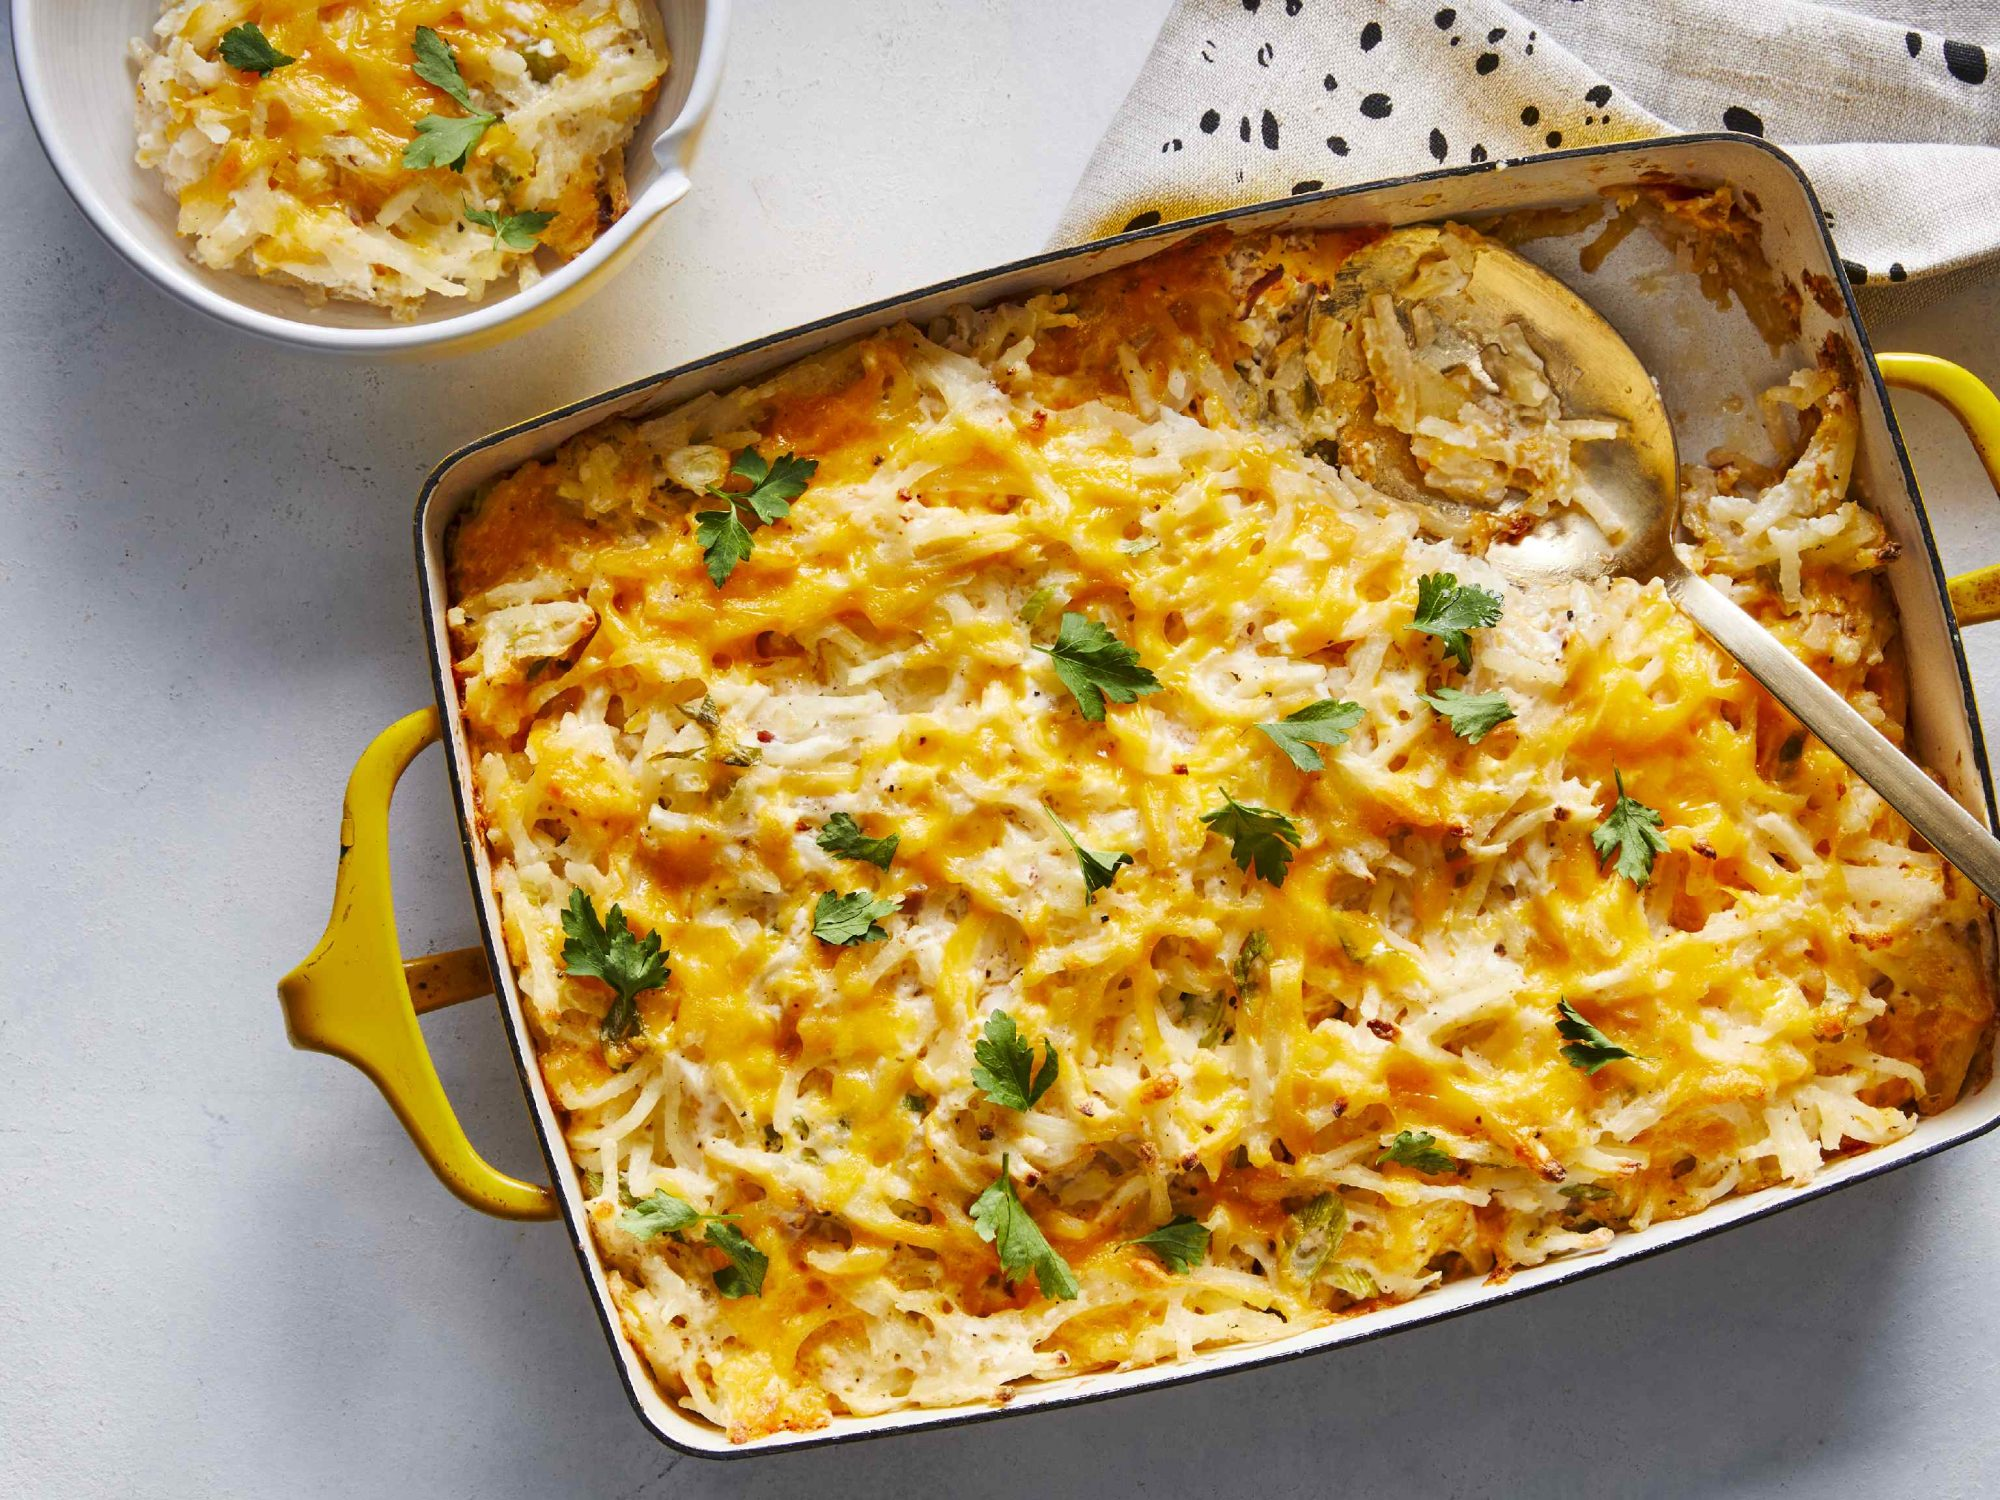 mr - Cheesy Potato Bake Image